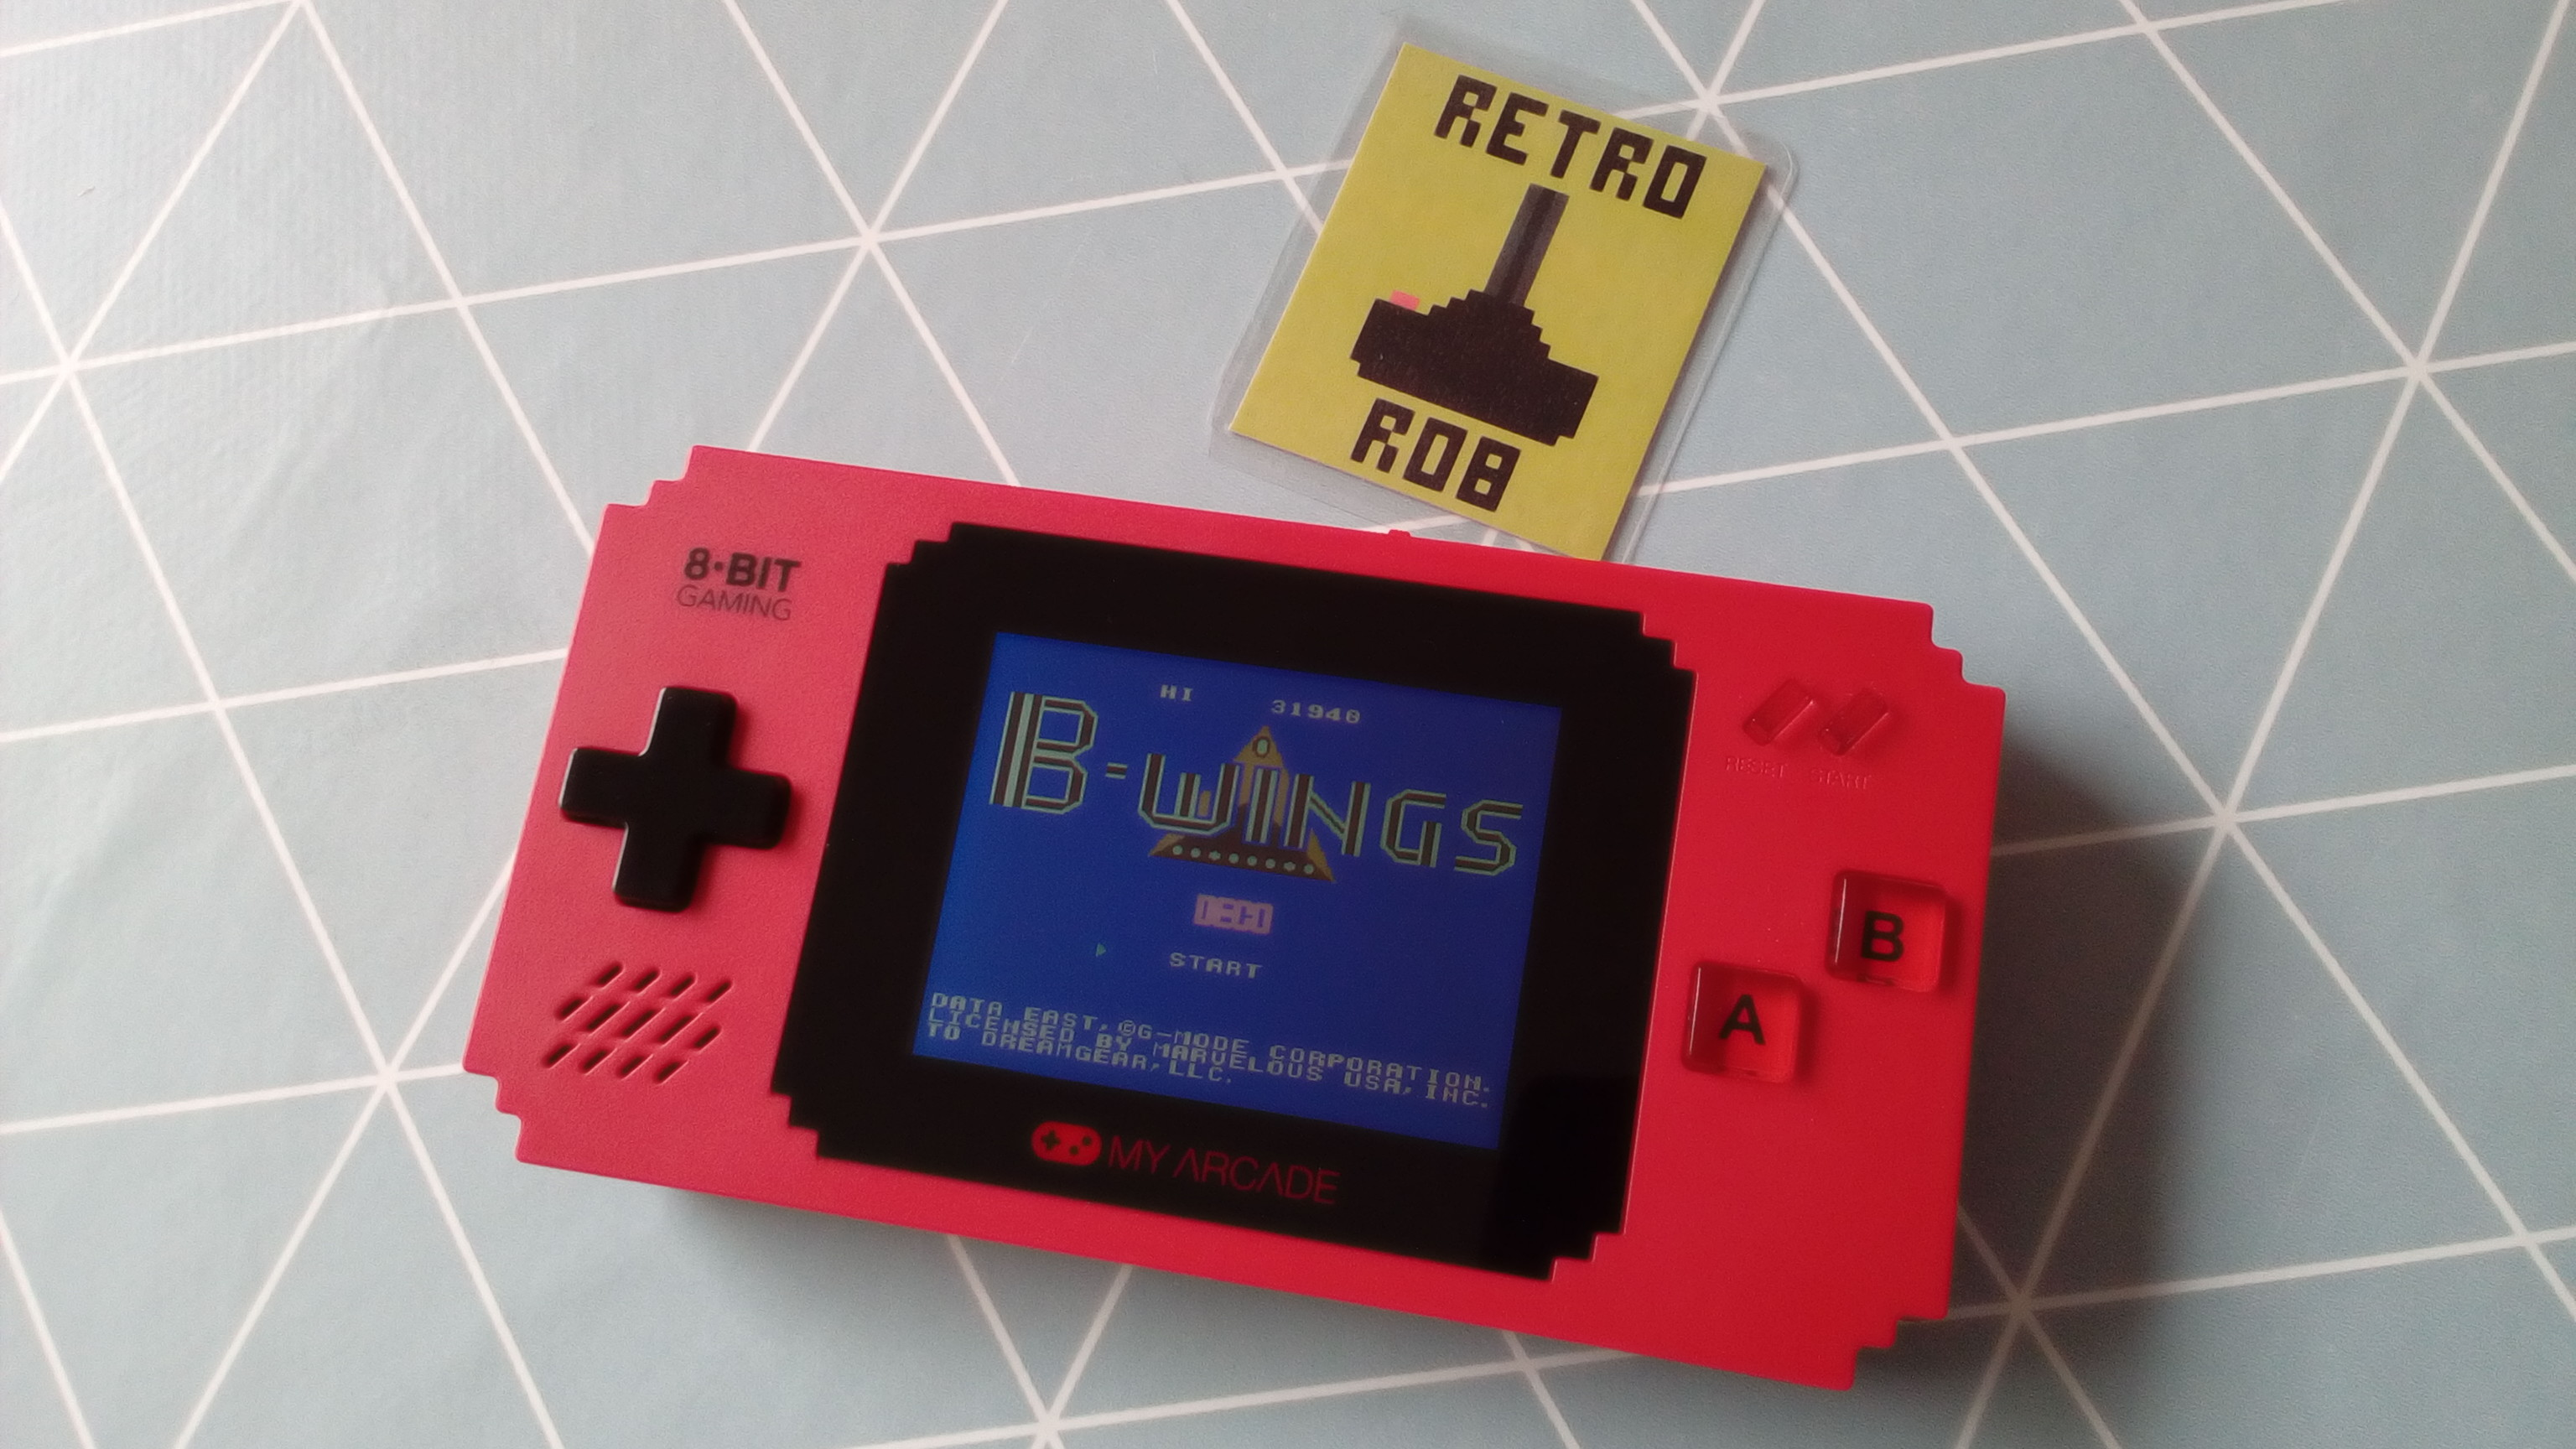 RetroRob: My Arcade: B-Wings (Dedicated Handheld) 31,940 points on 2020-04-30 10:41:35